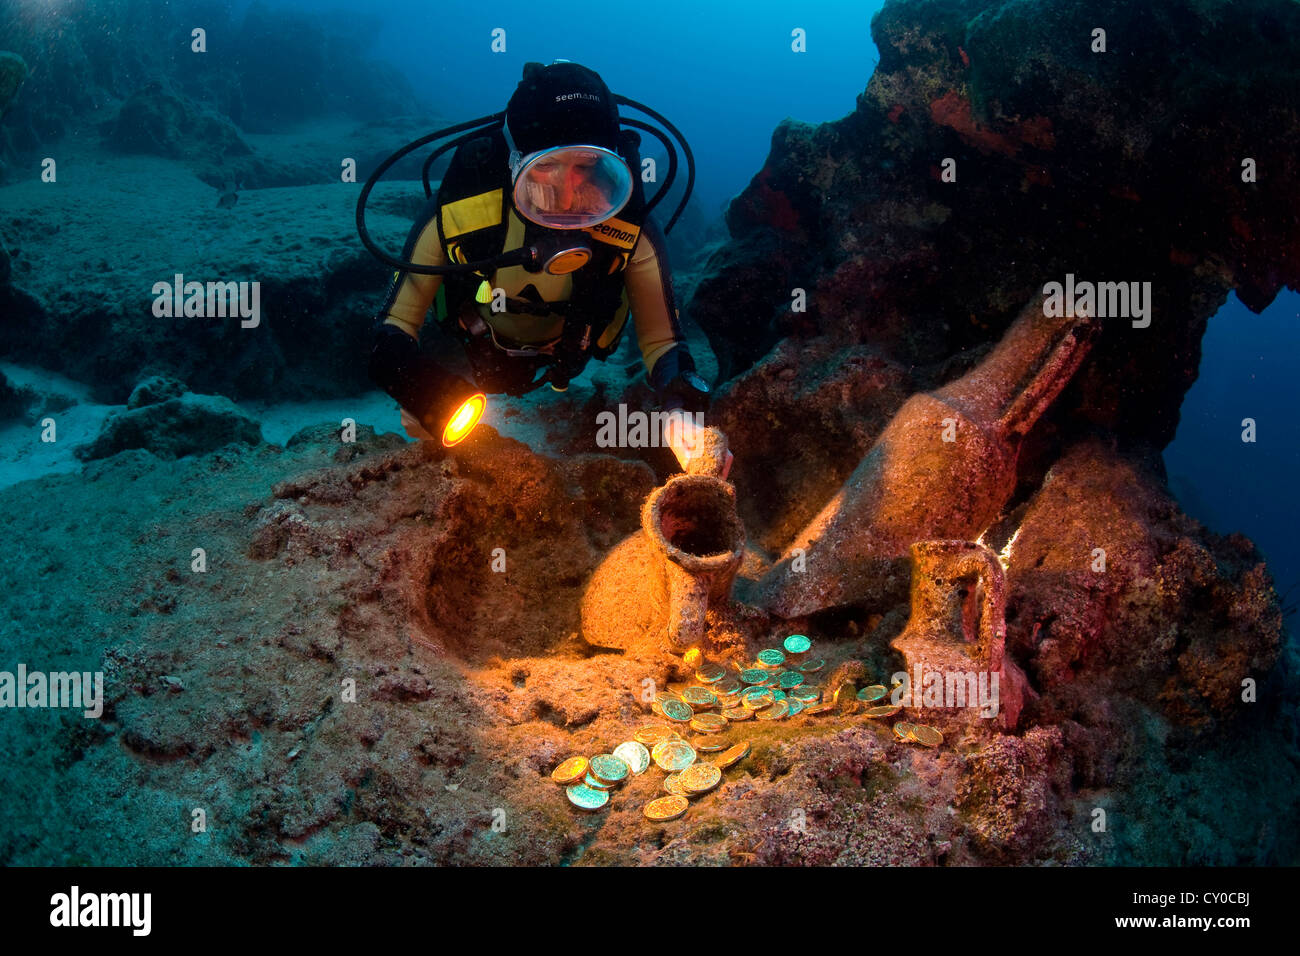 Diver discovering gold coins on the ocean floor inside old Italian amphoras dating from the 2nd century BC, Turkey - Stock Image